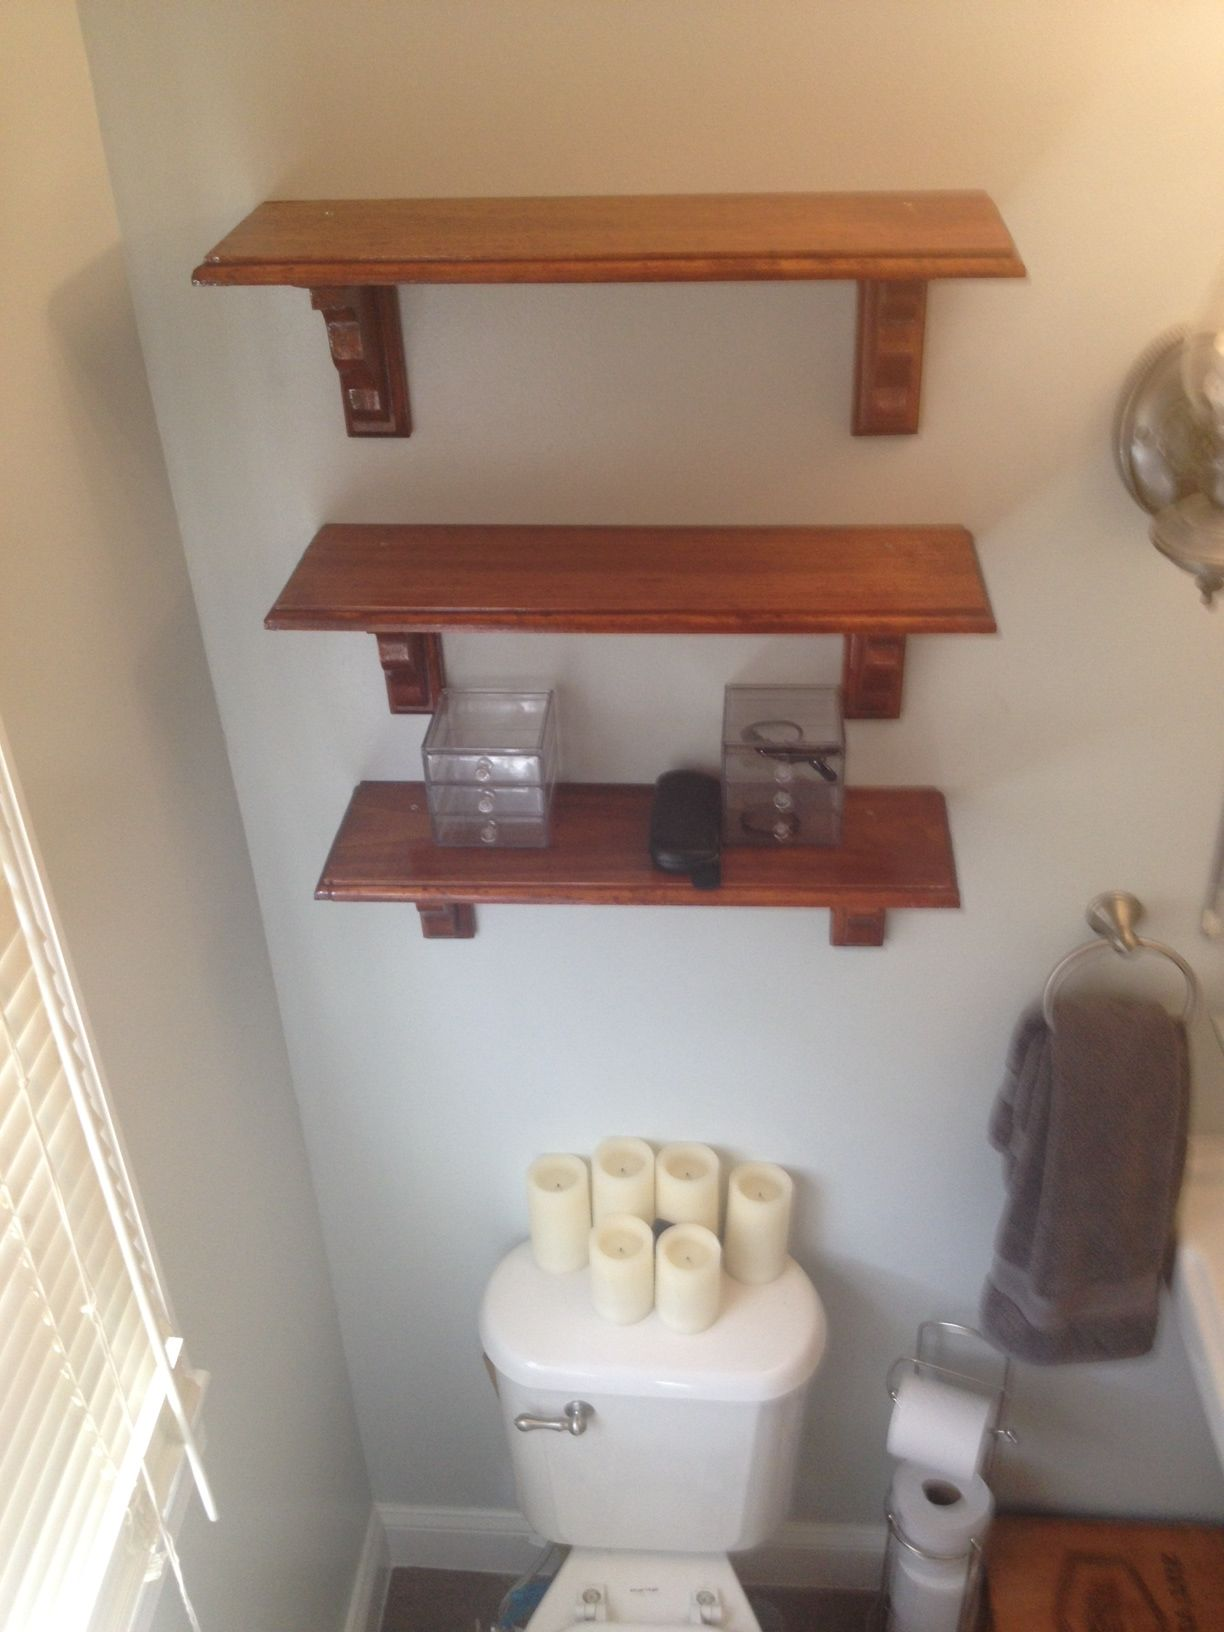 Our DIY full gut bathroom reno Here are our DIY shelves We